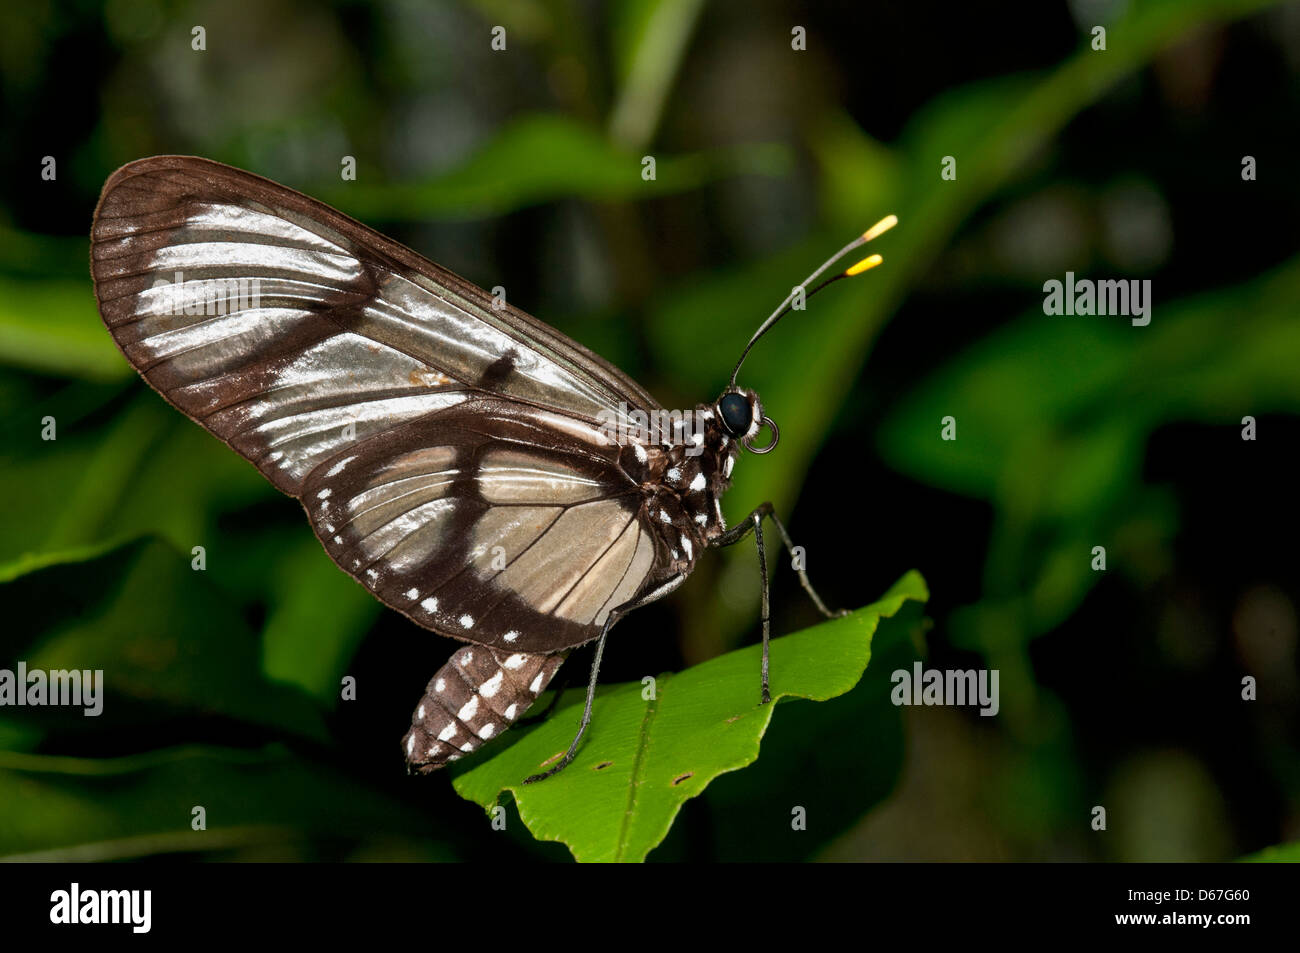 Giant Glasswing (Methona confusa), Brush-footed butterflies (Nymphalidae), Tambopata Nature Reserve, Madre de Dios - Stock Image